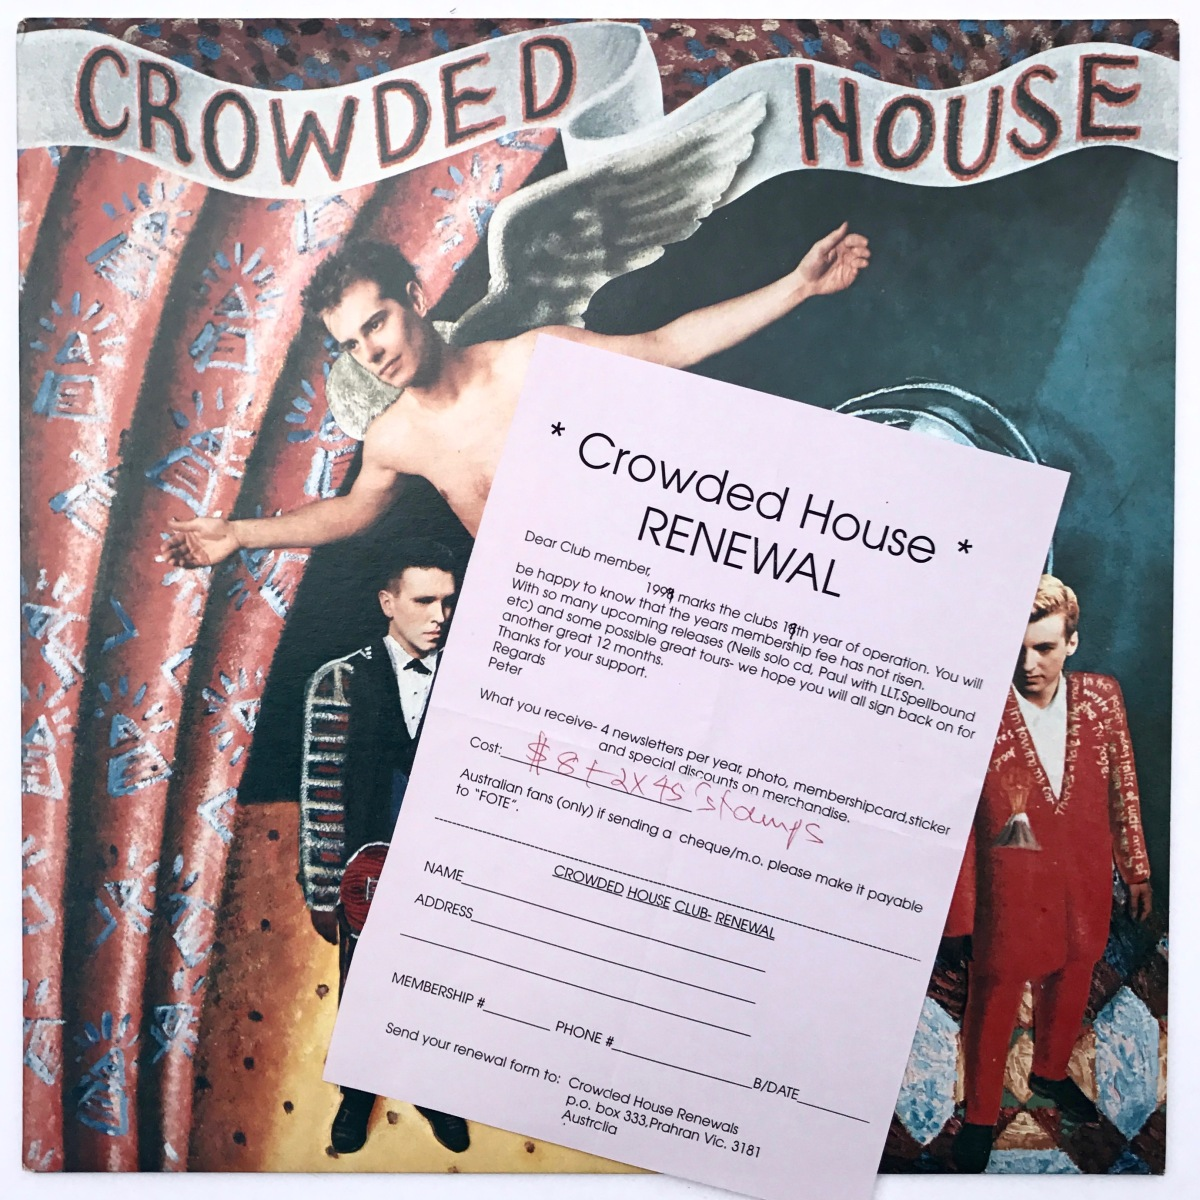 CROWDED HOUSE RENEWAL